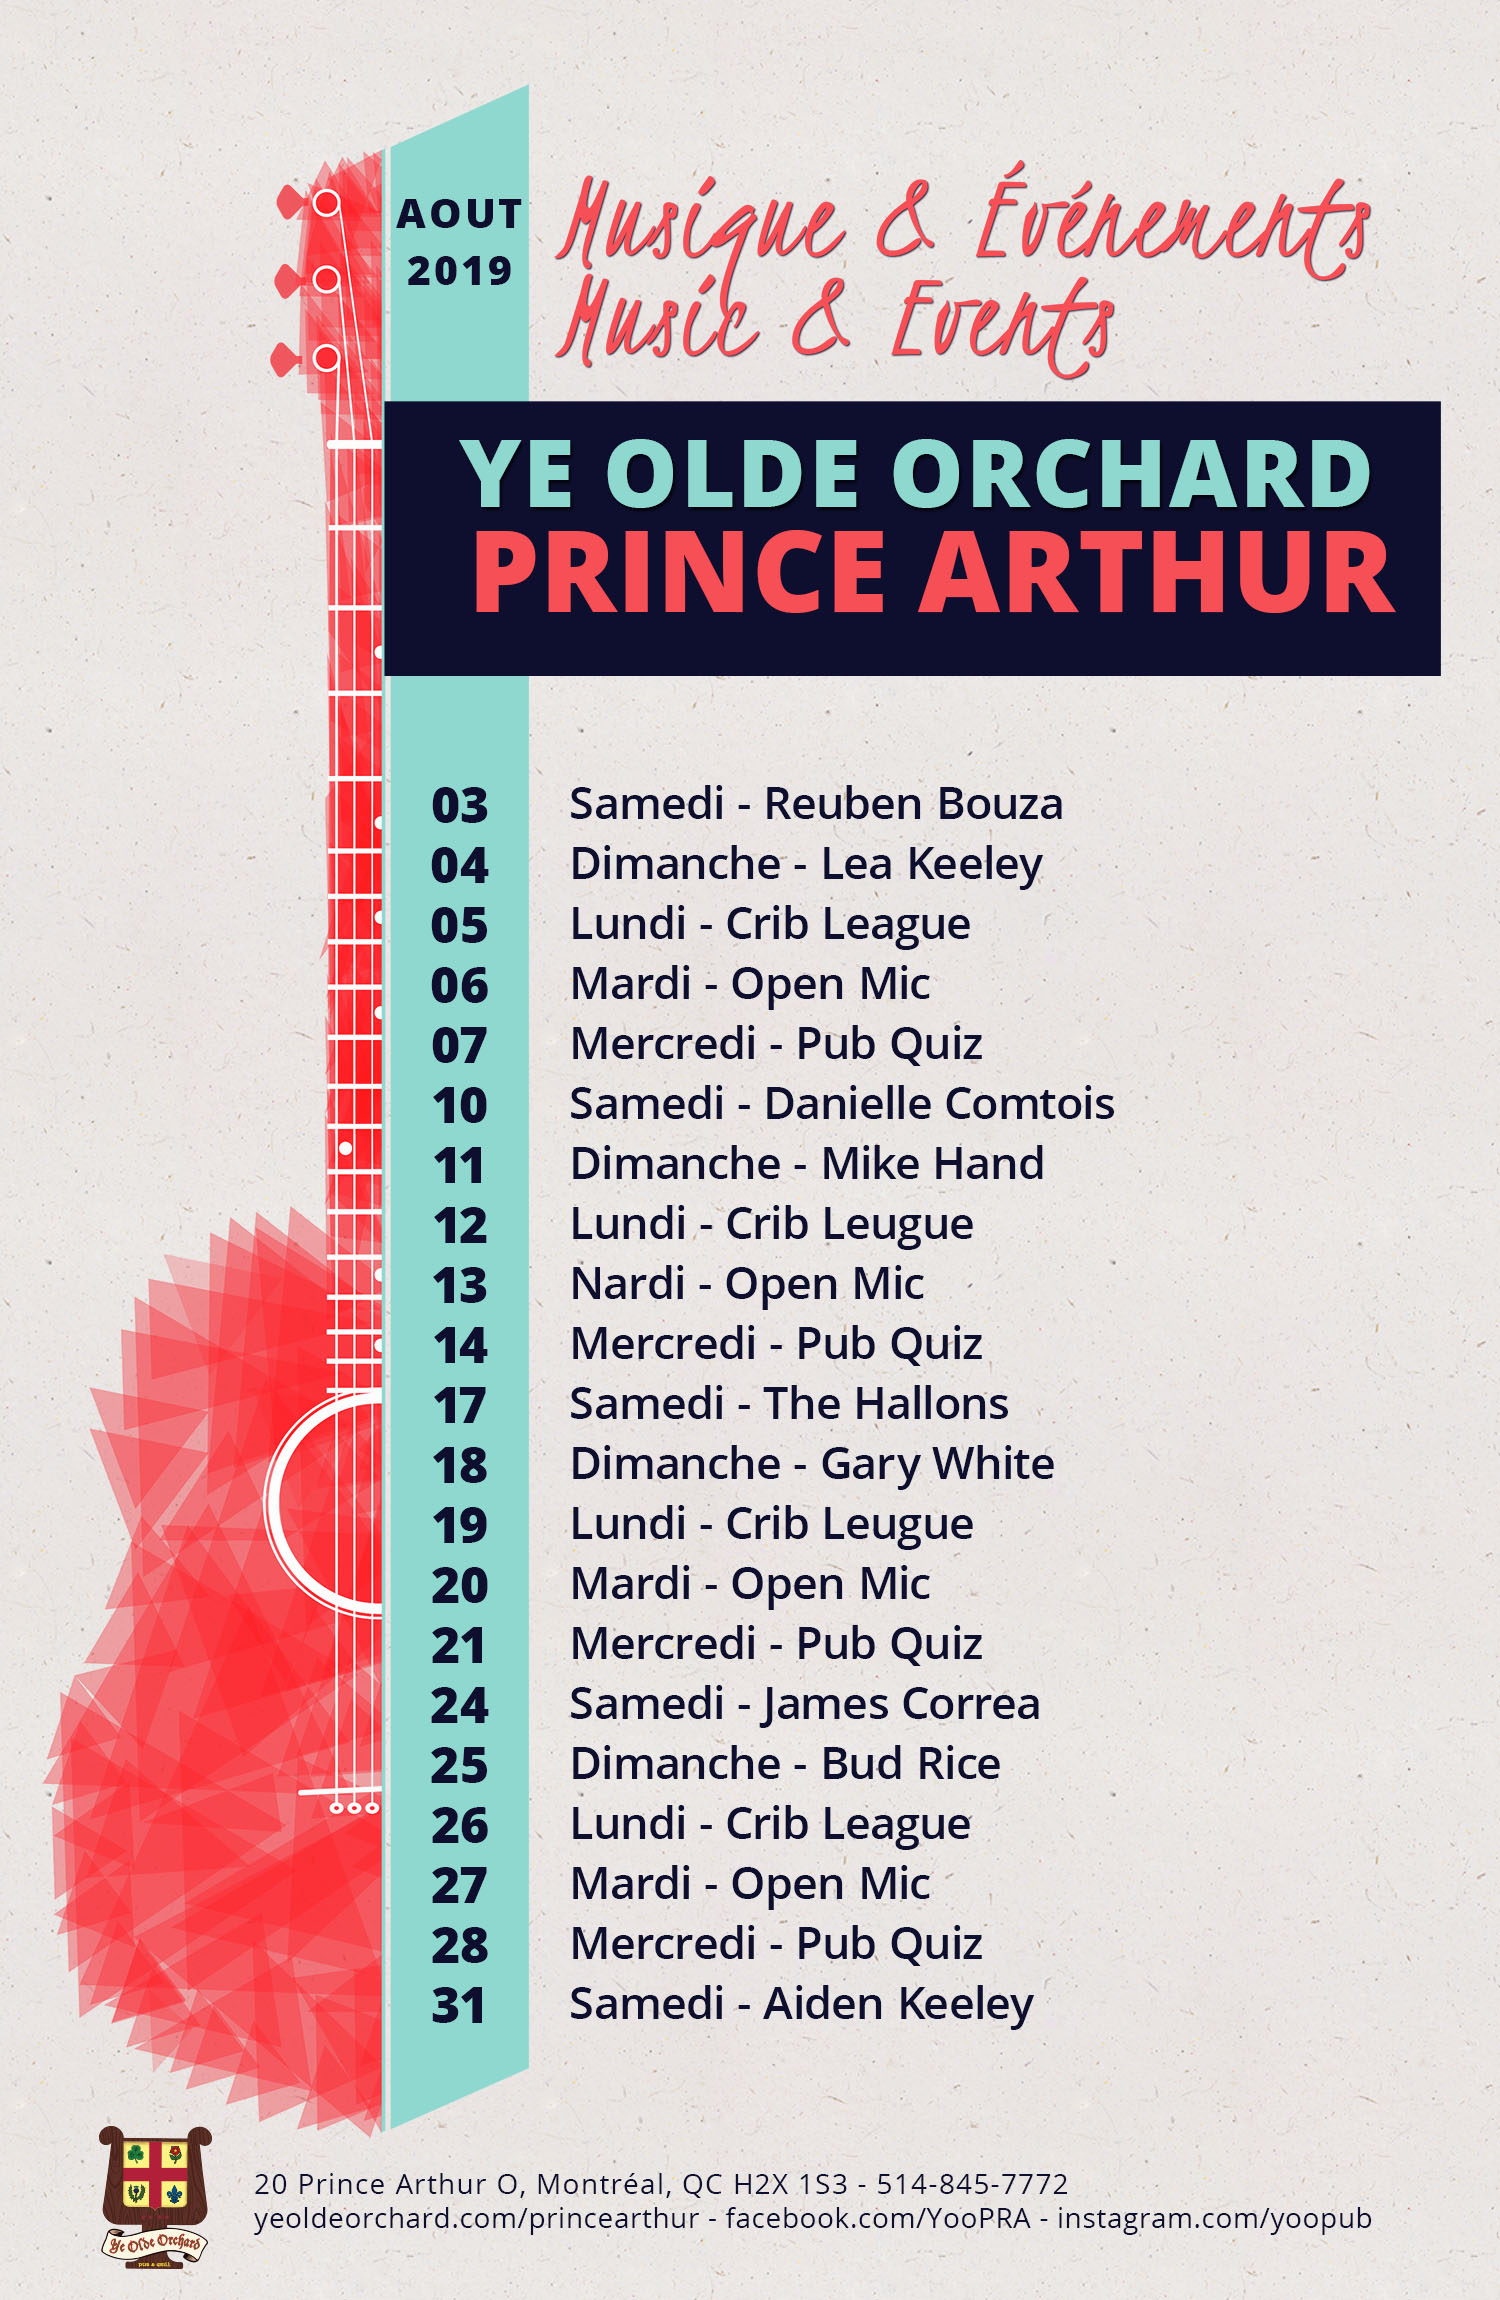 ye-olde-orchard-pub-music-and-events-calendar-prince-arthur-WEB-AUG